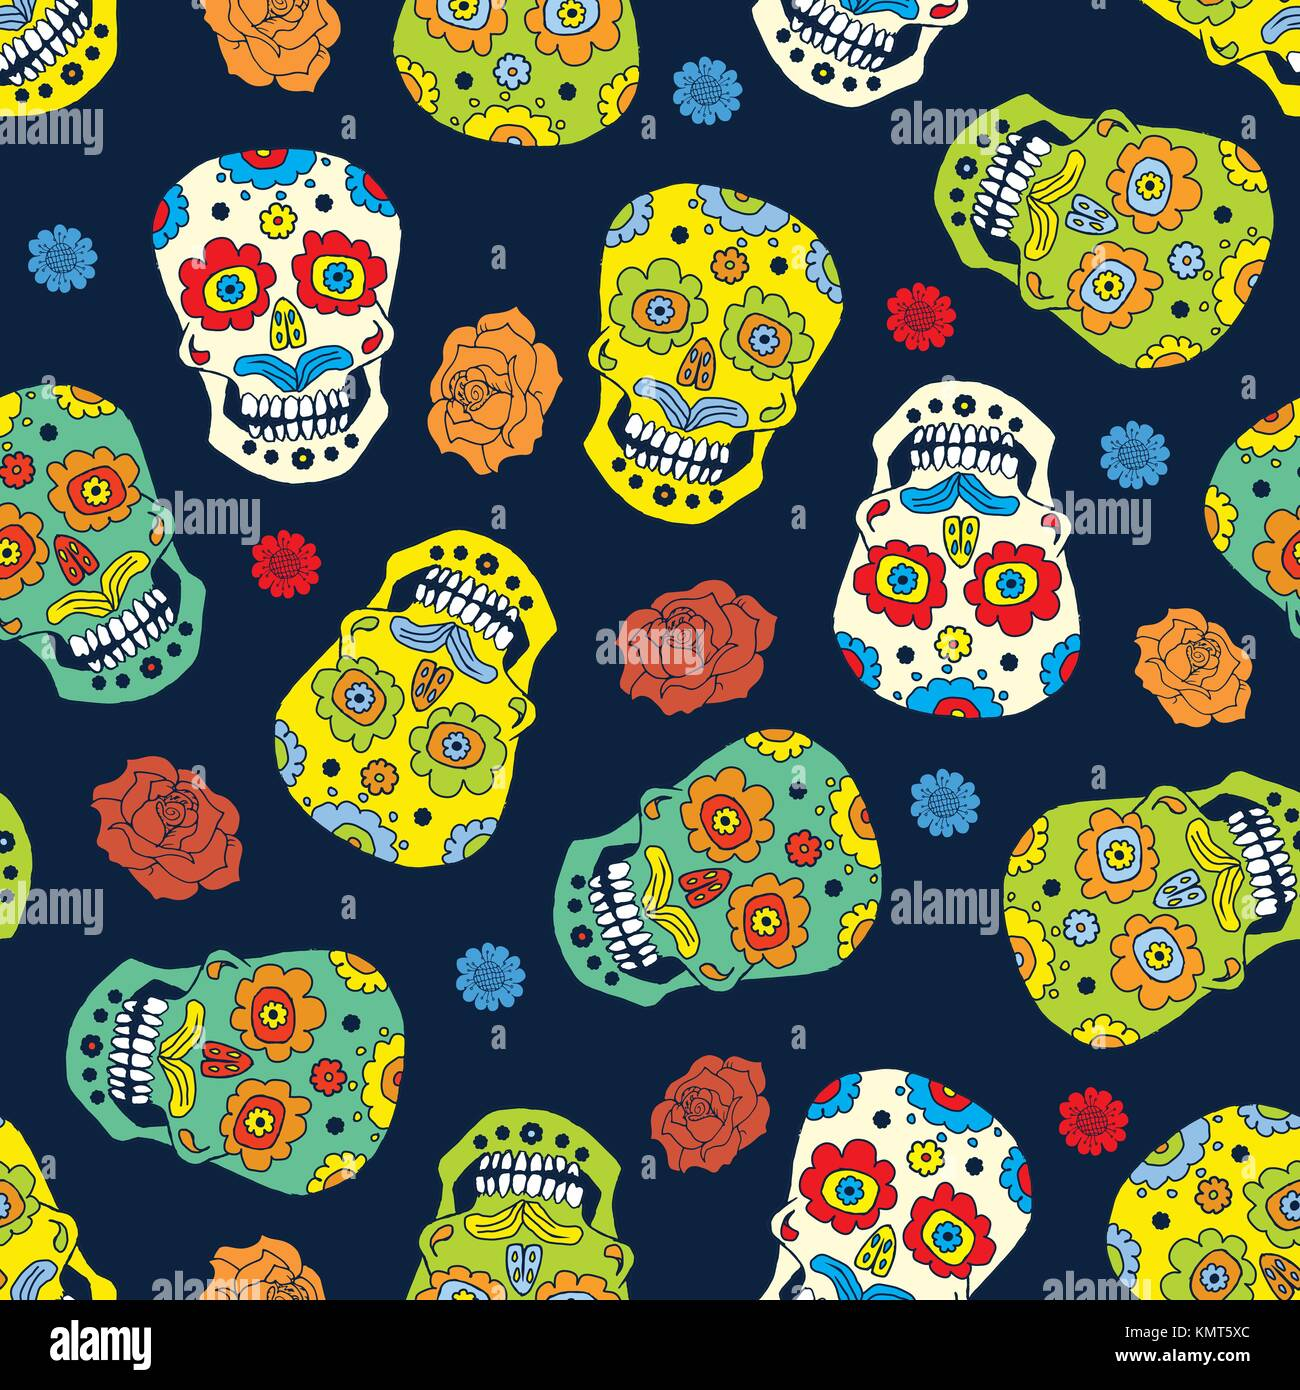 Day Of The Dead Seamless Pattern Handdrawn Sugar Skulls And Roses Background Vector Illustration